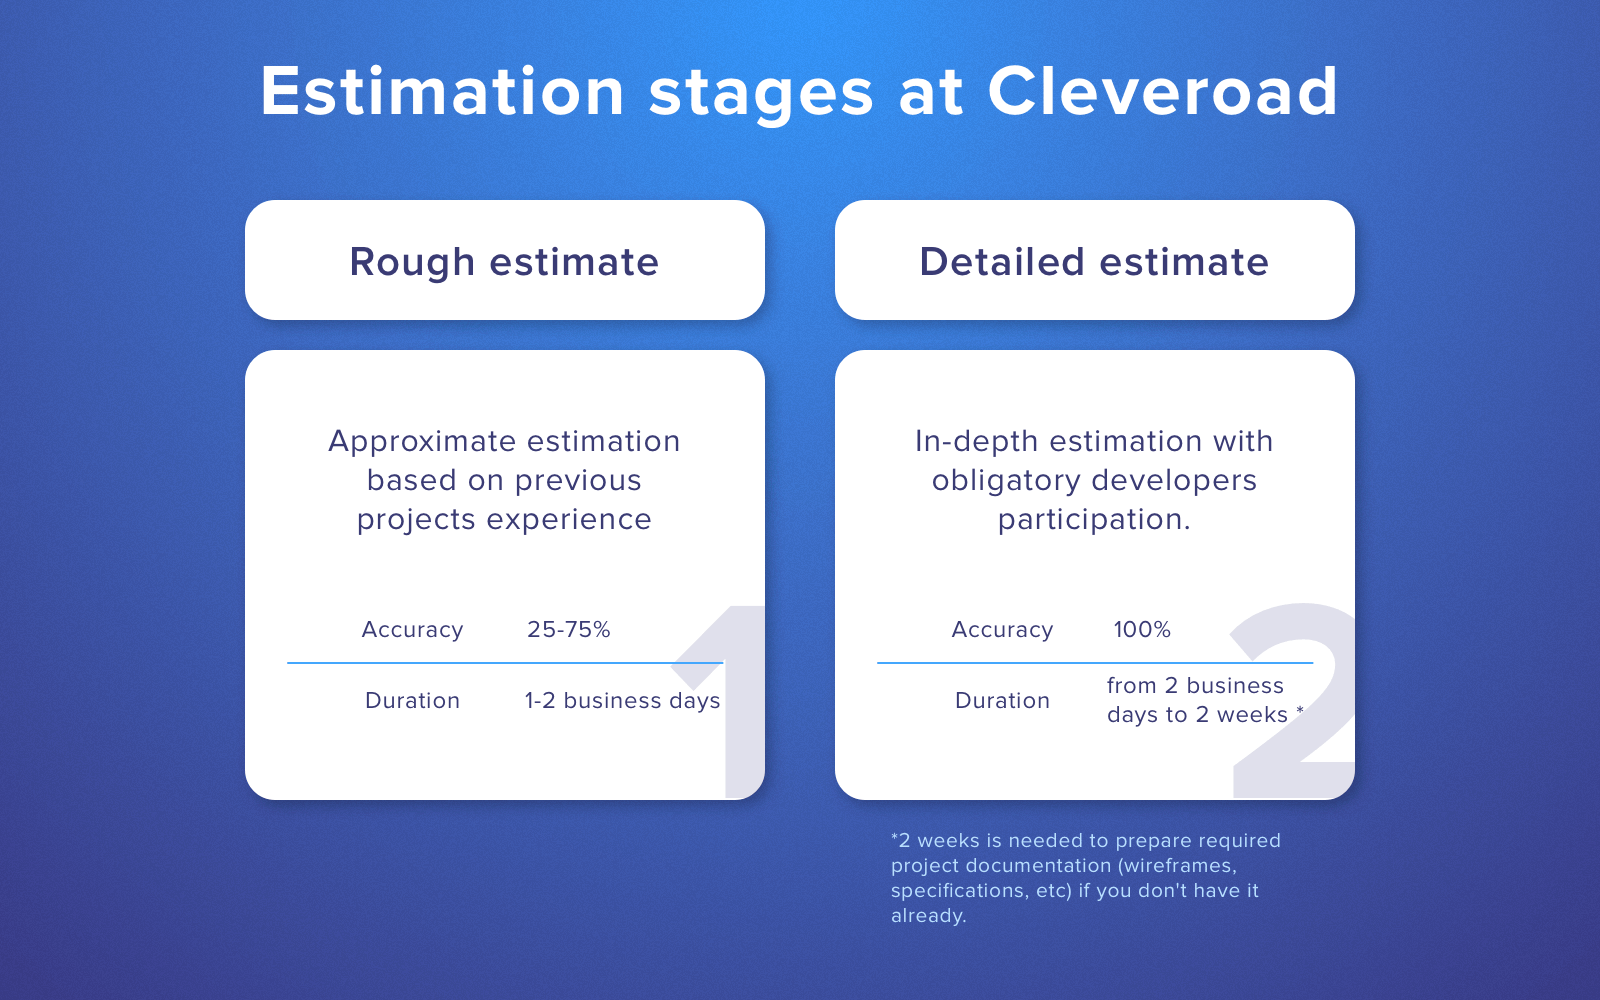 Software project estimation process at Cleveroad